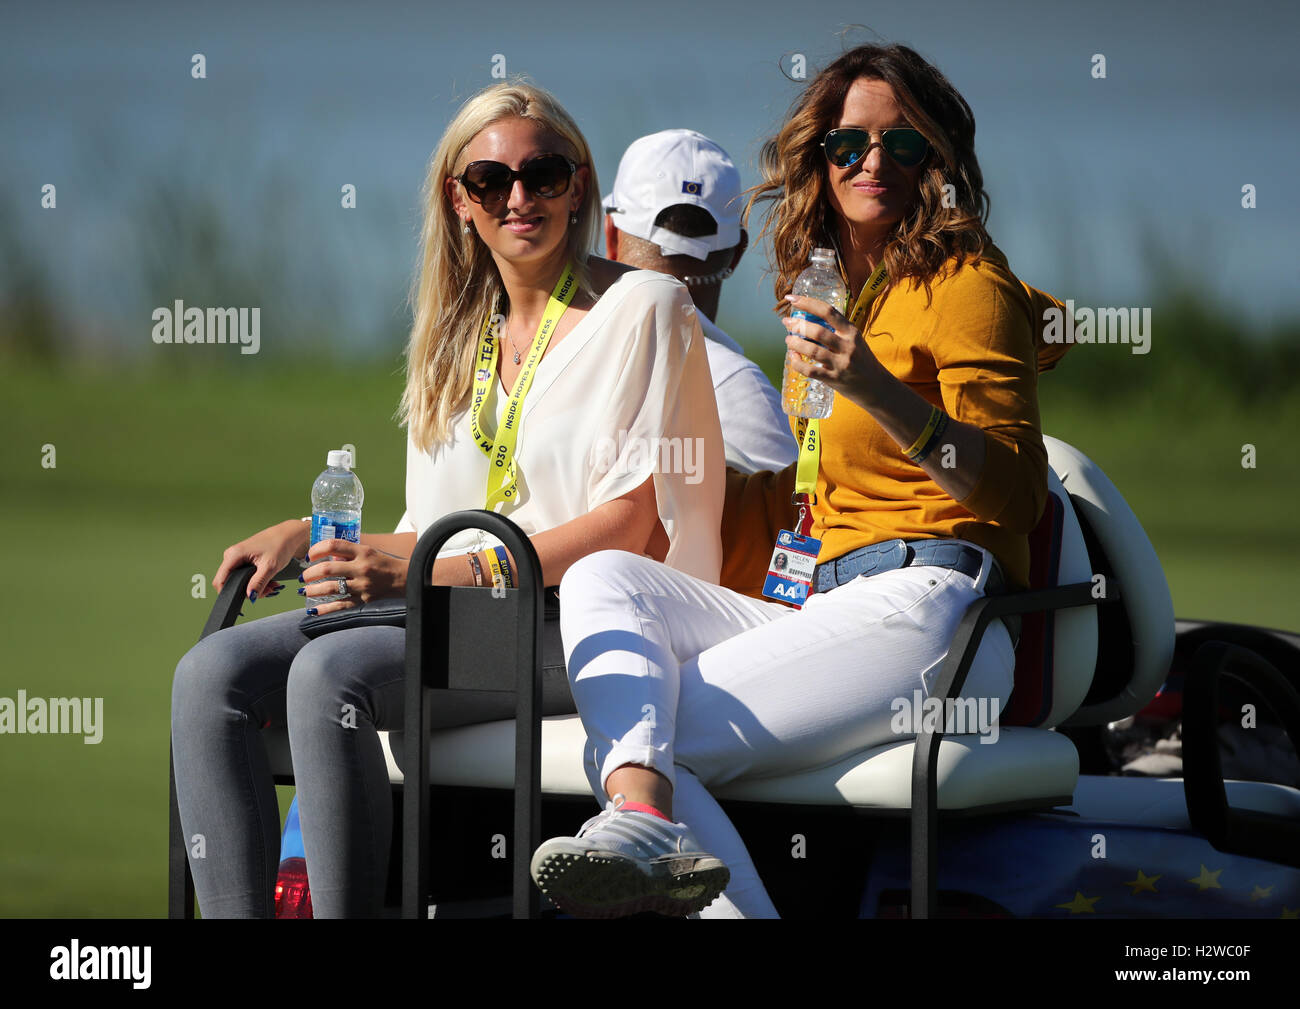 Helen storey right girlfriend of europe s lee westwood and nicole willett wife if europe s danny willett during the fourballs on day two of the 41st